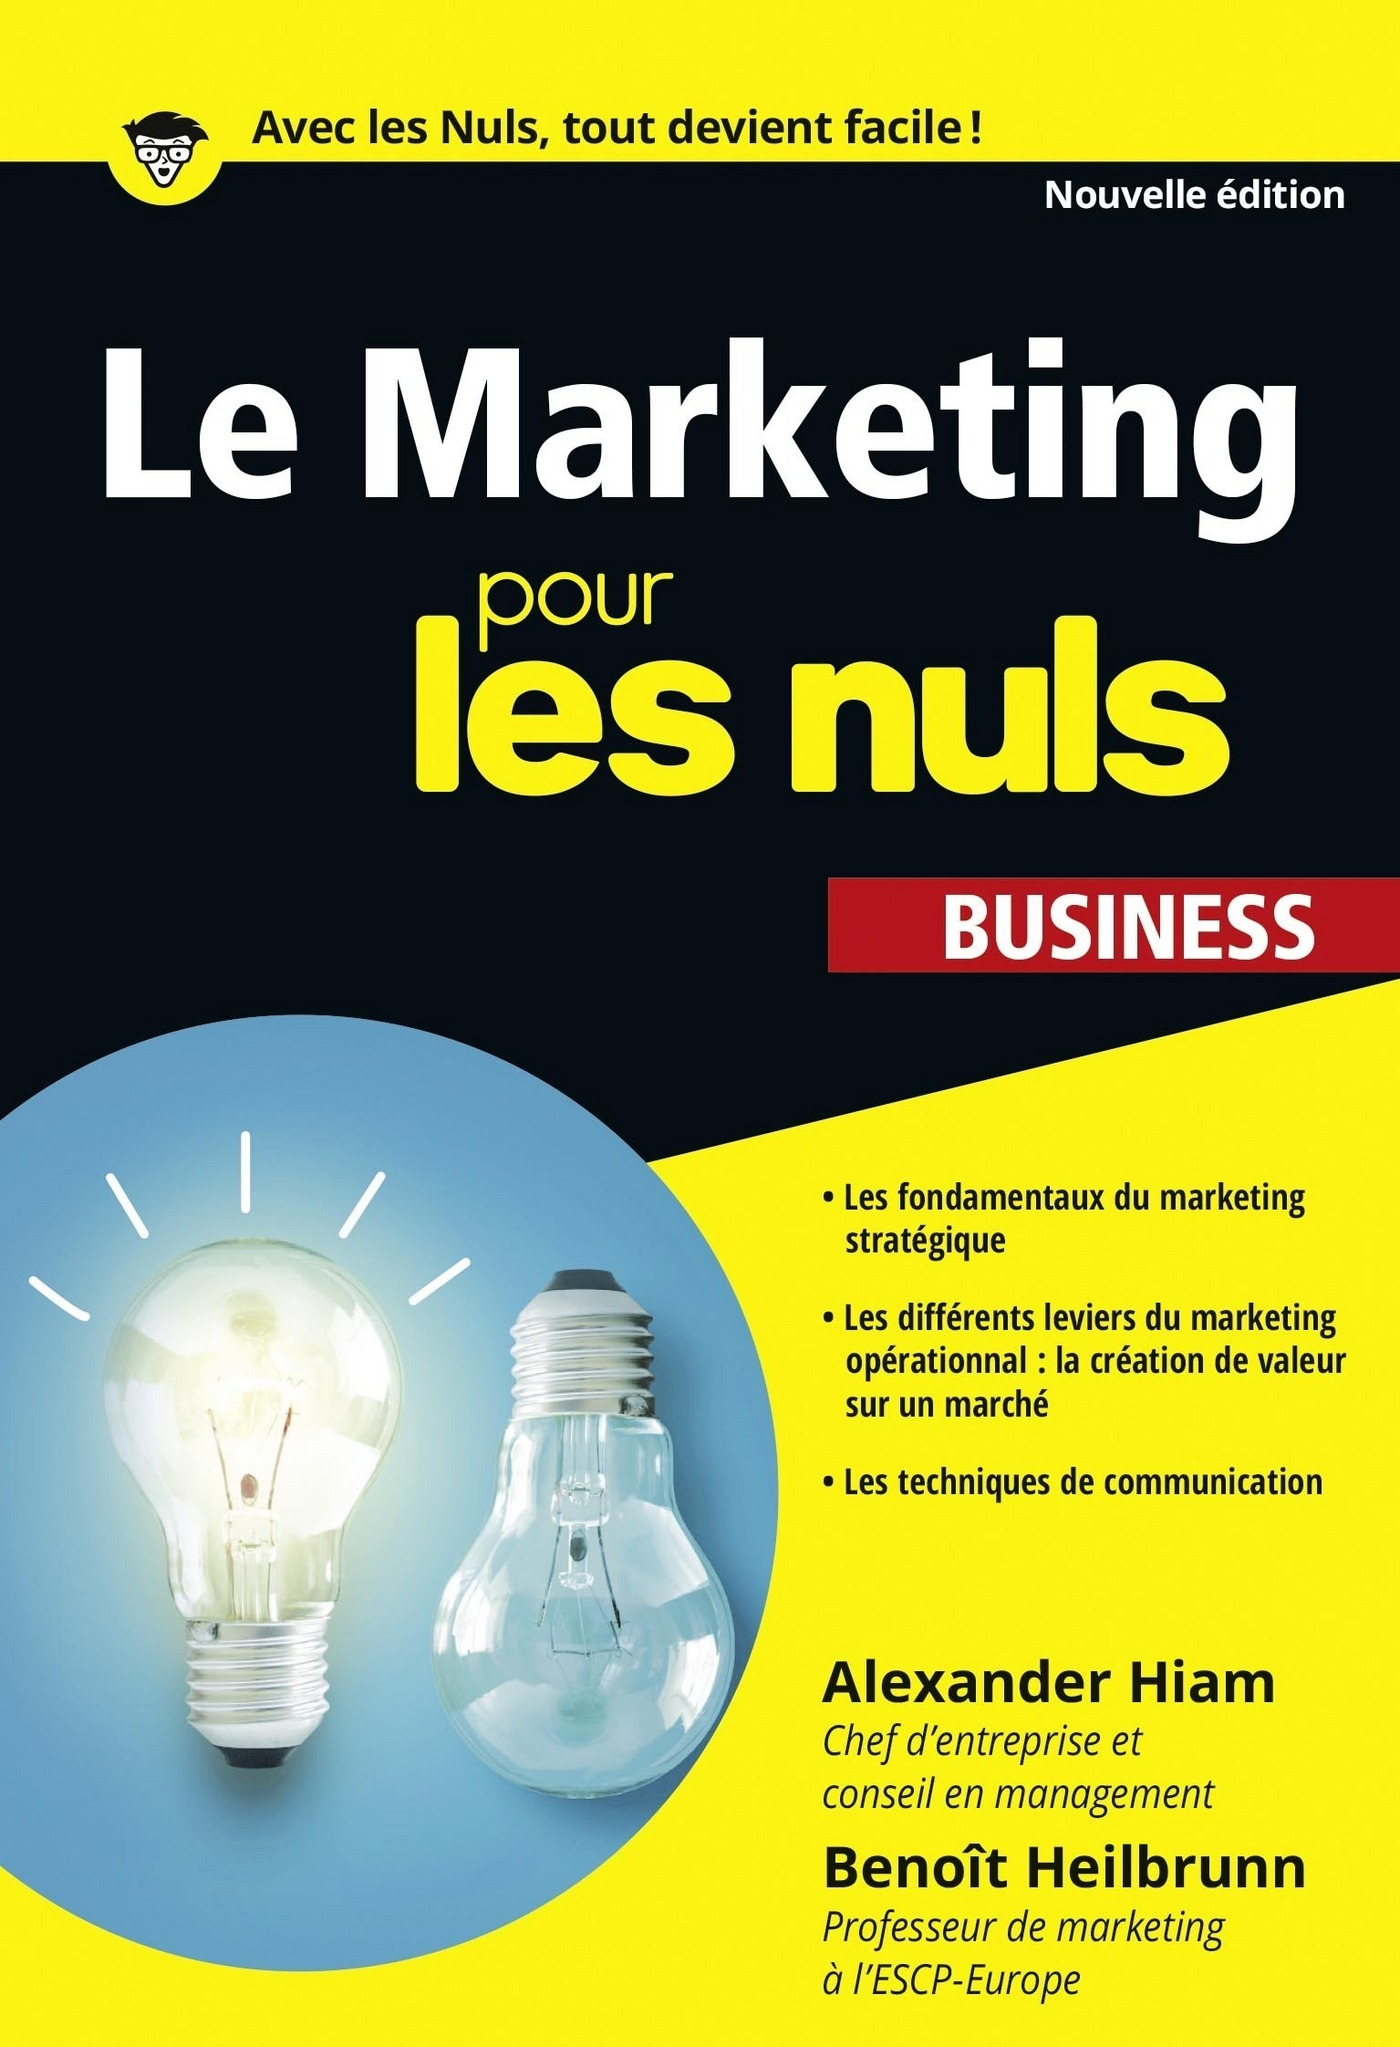 Le Marketing pour les Nuls poche business